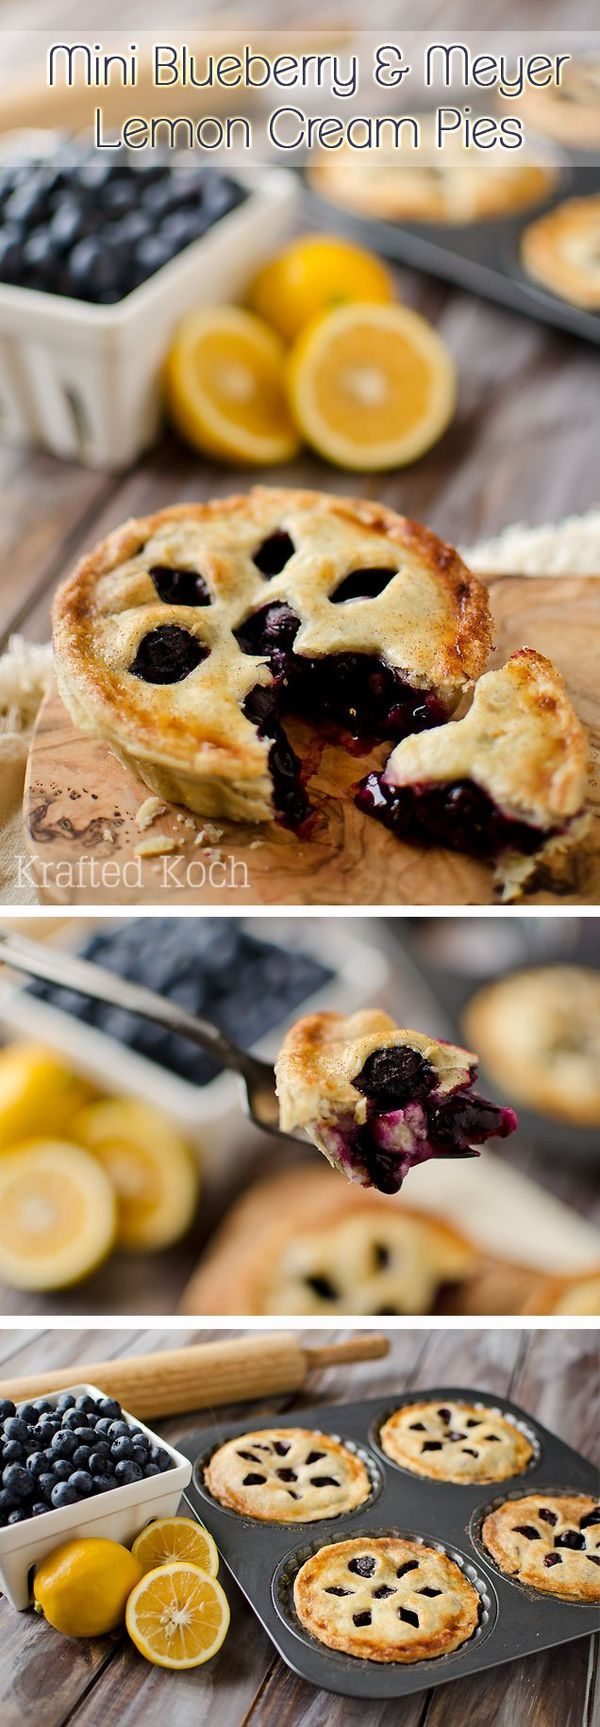 Mini Blueberry & Meyer Lemon Cream Pies - Krafted Koch - The perfect little bit of summer in these adorable and delicious pies!